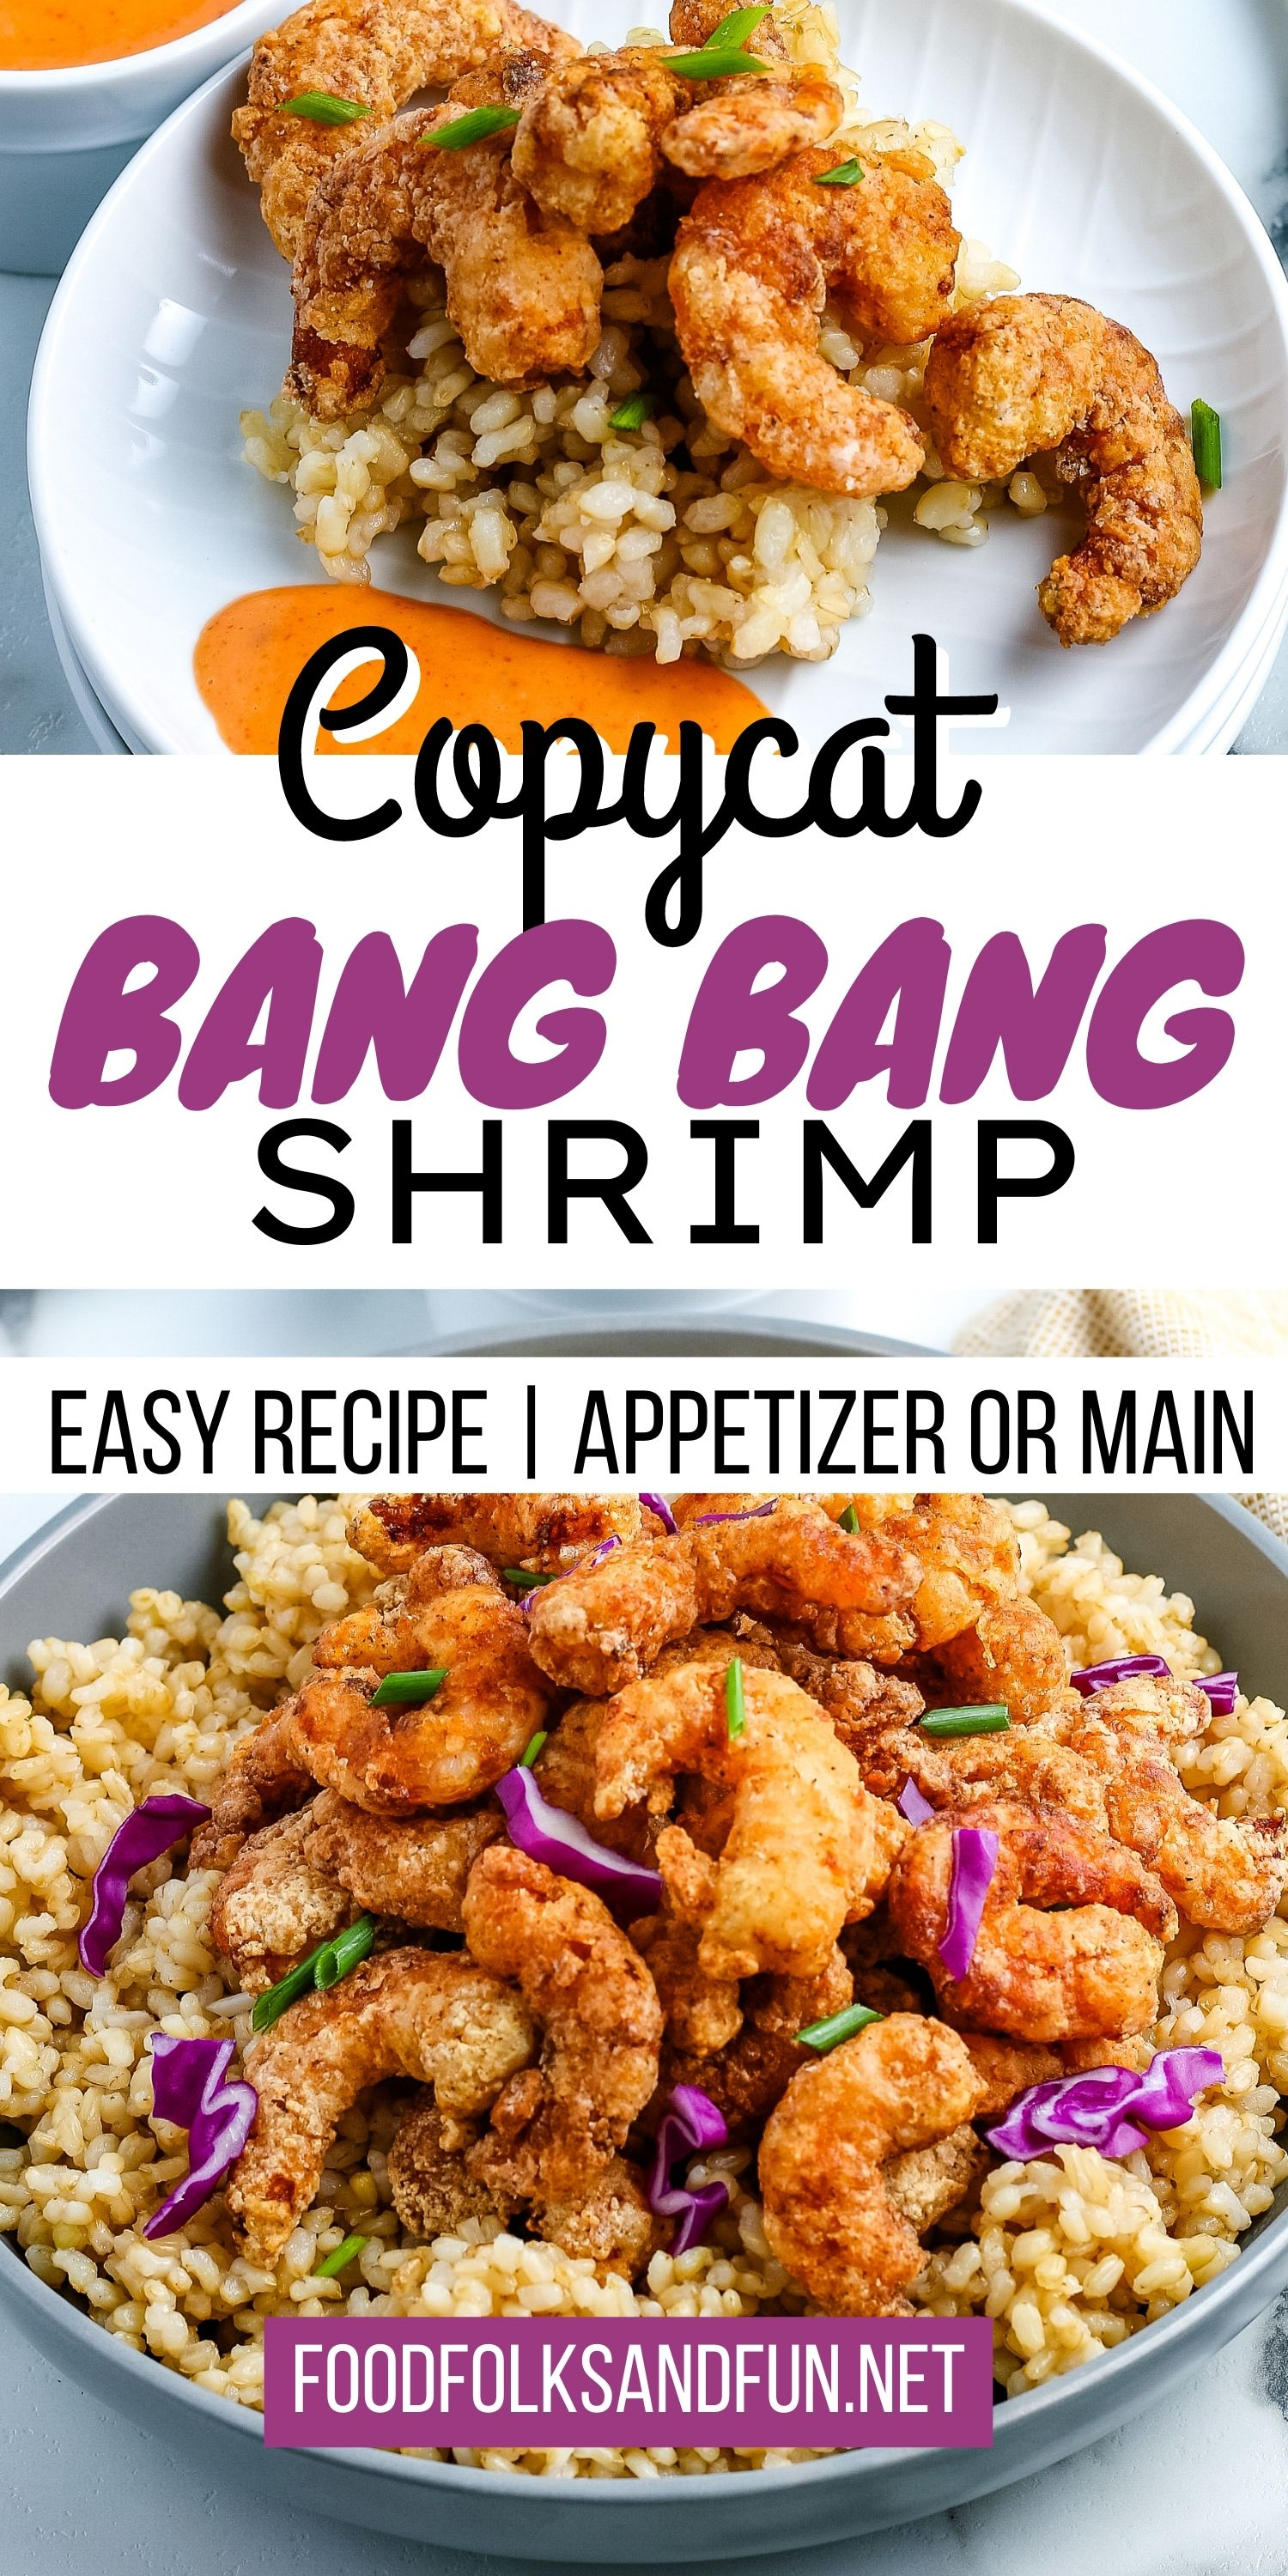 This Bang Bang Shrimp recipe is a copycat of Bonefish Grill's dish. It's easy to make, and you can serve it as an appetizer or main dish. via @foodfolksandfun